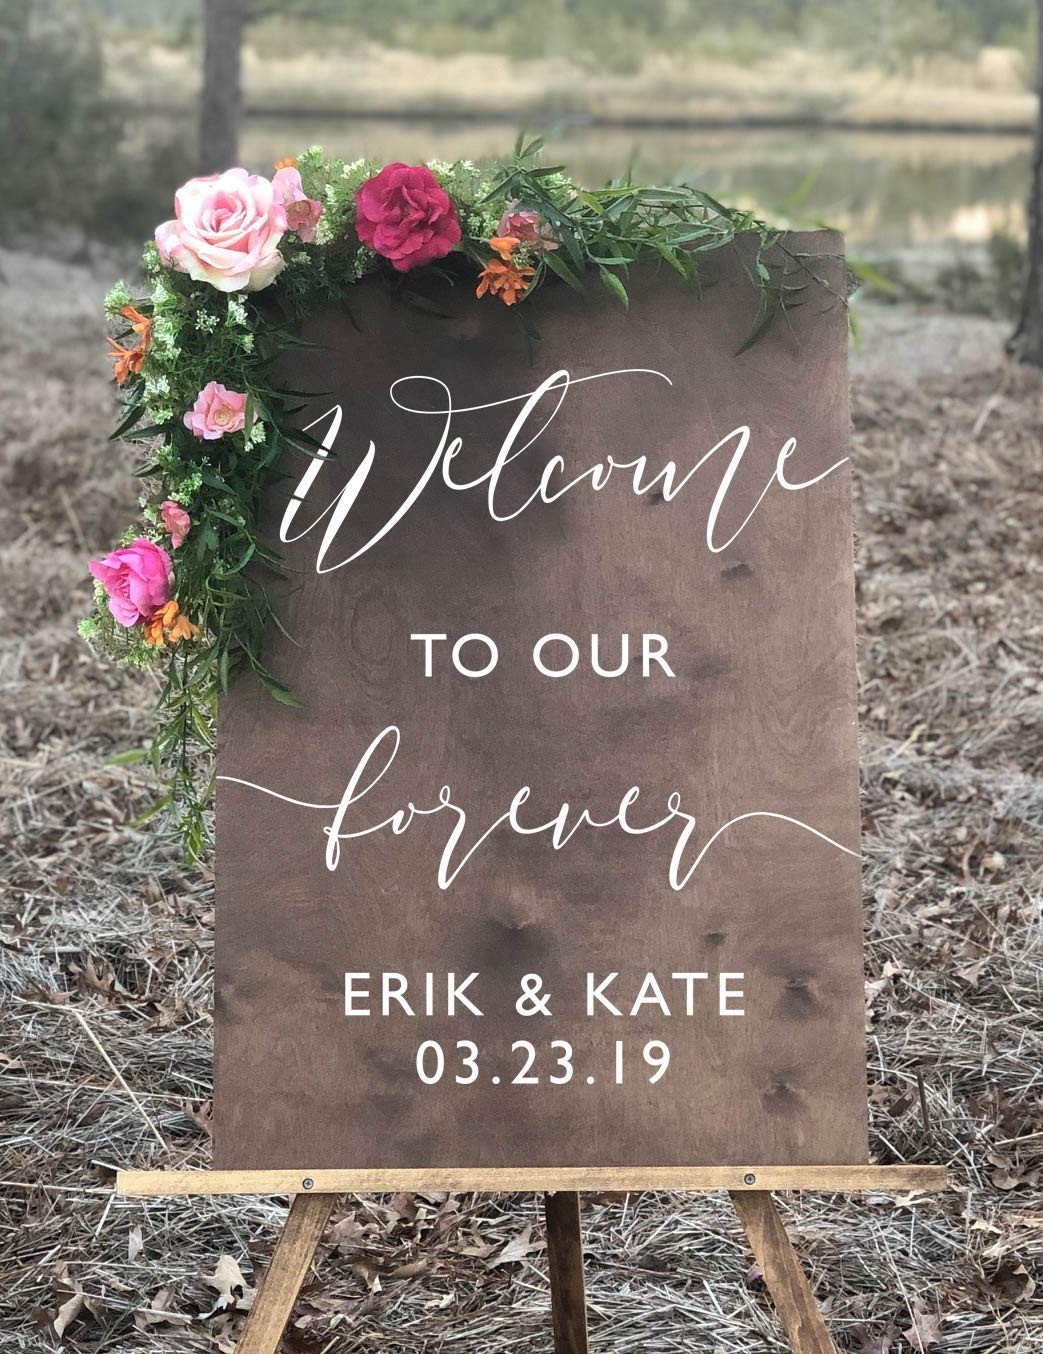 Rustic Wedding Signs.Amazon Com Rustic Wedding Welcome Sign Wood Rustic Welcome To Our